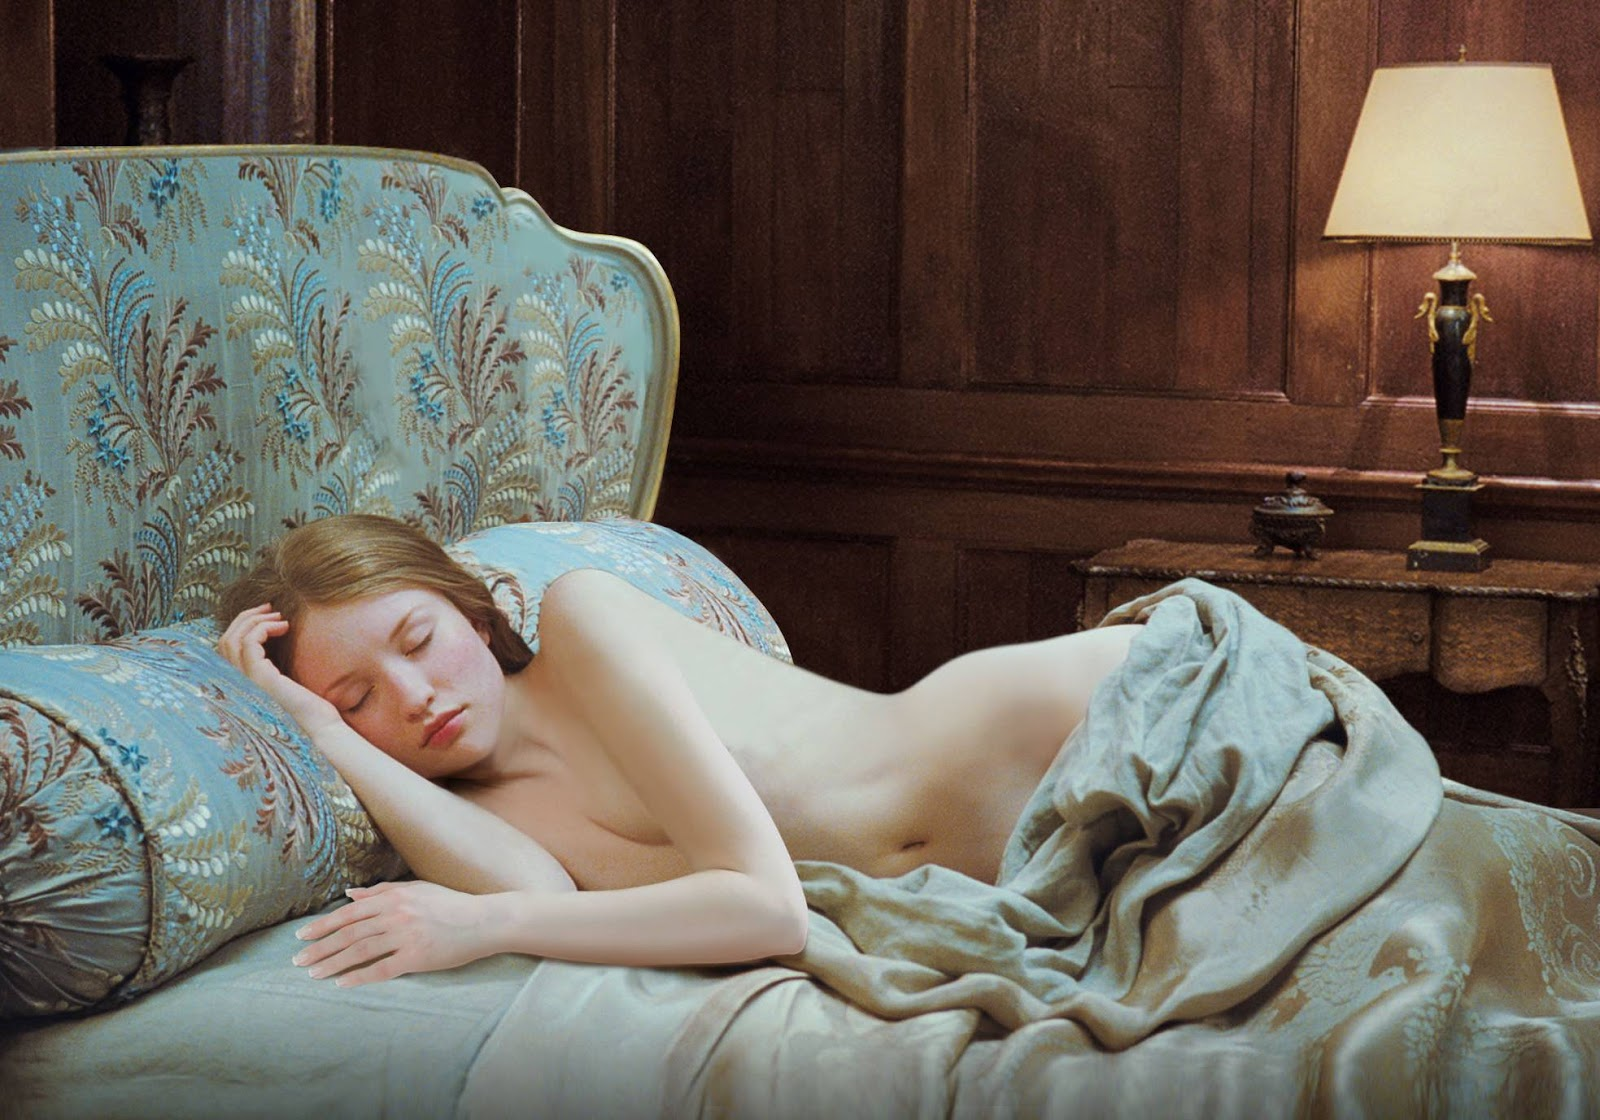 Sleeping Beauty (2011), Emily Browning as Lucy